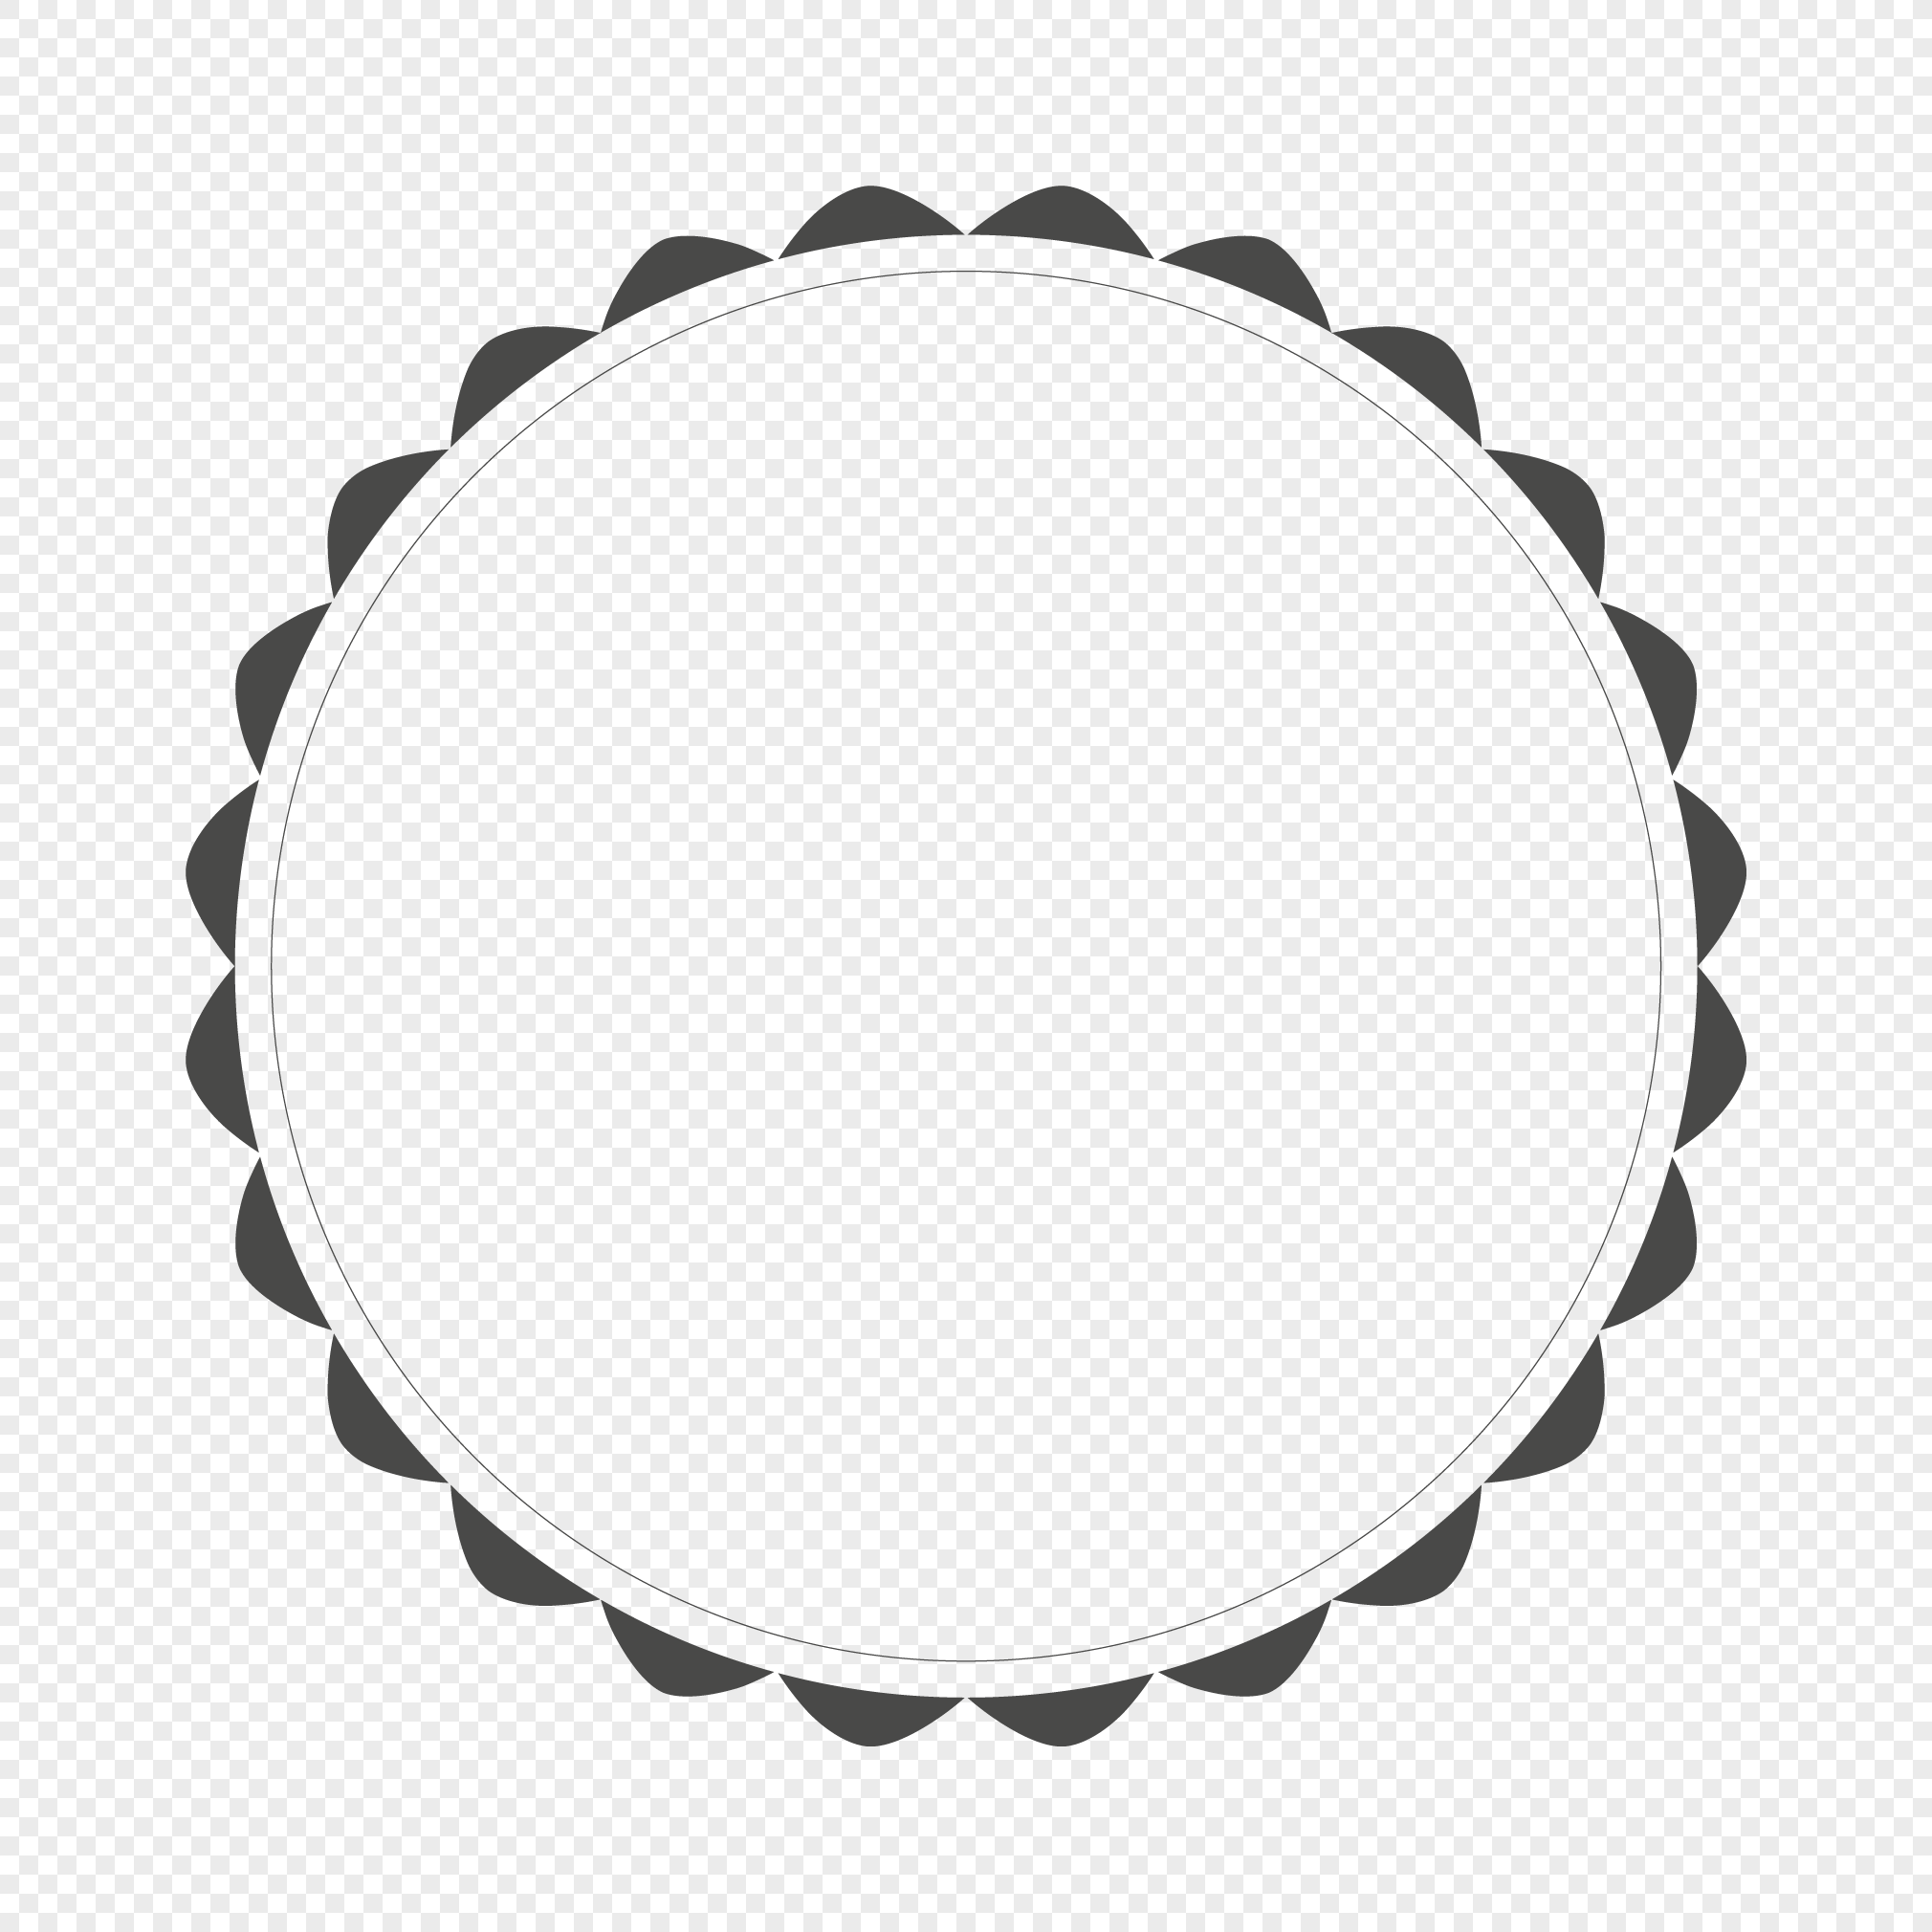 2020x2020 Circular Wreath Vector Diagram Png Image Picture Free Download